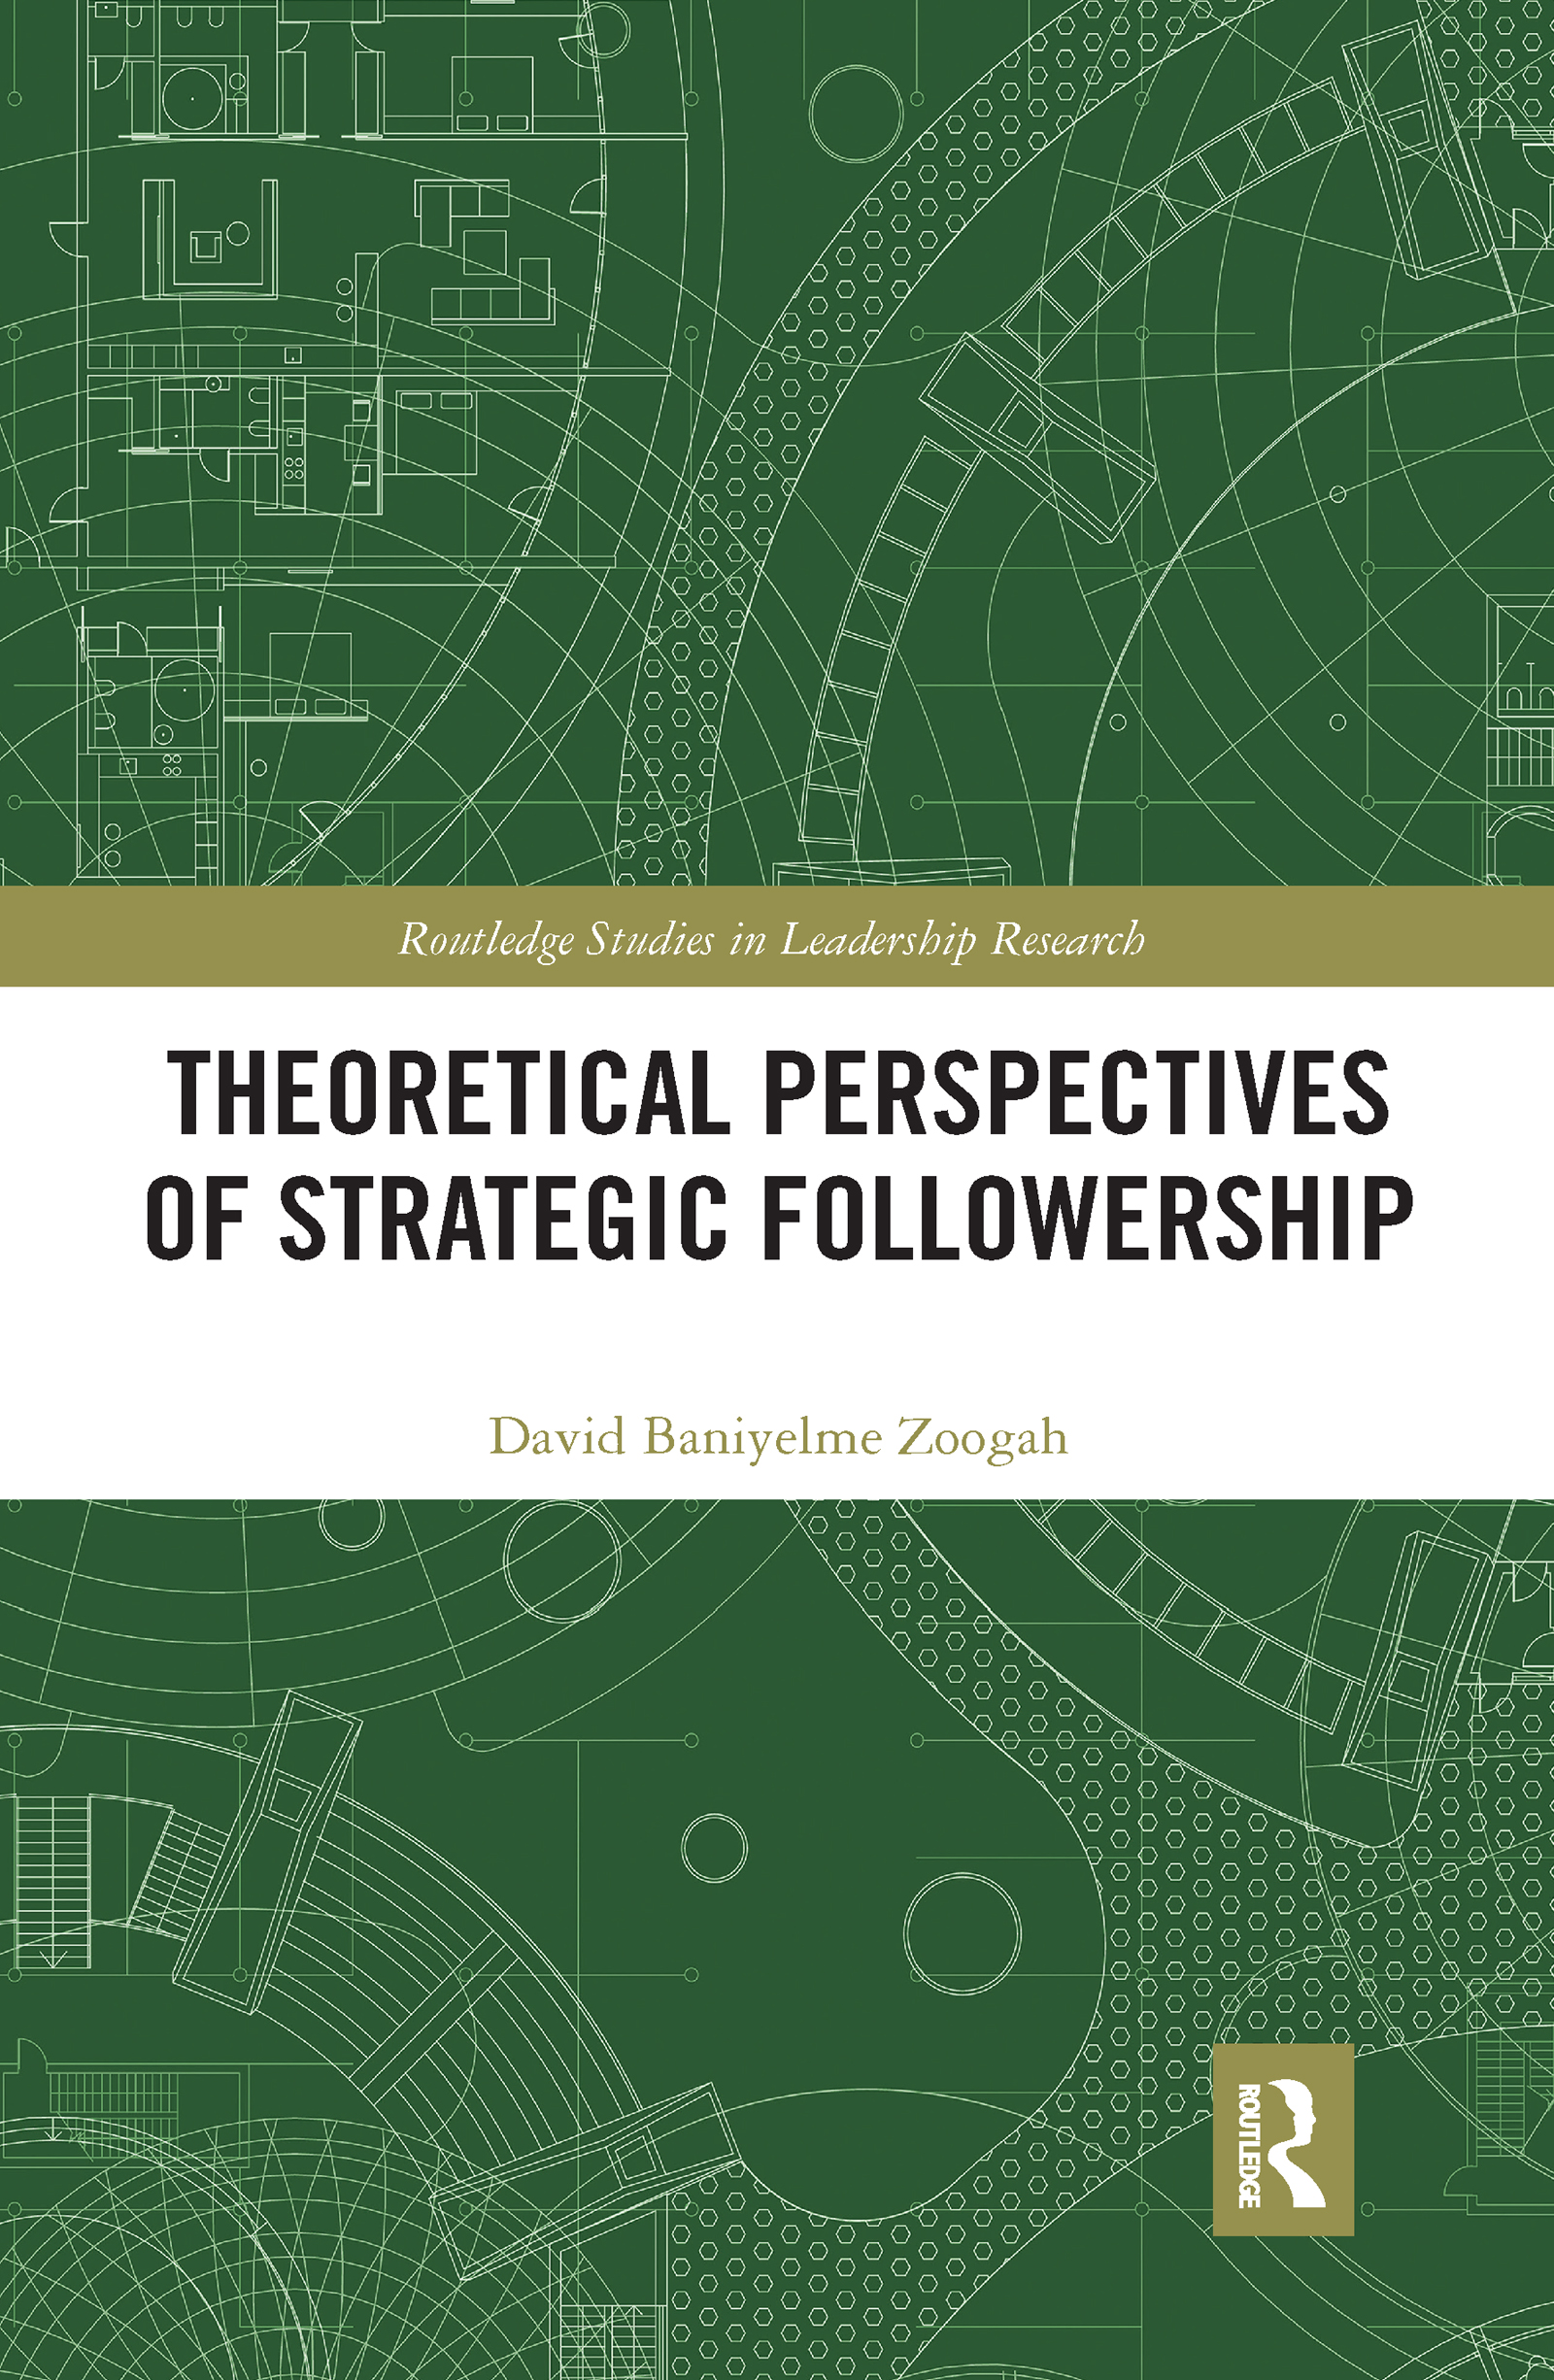 Theoretical Perspectives of Strategic Followership